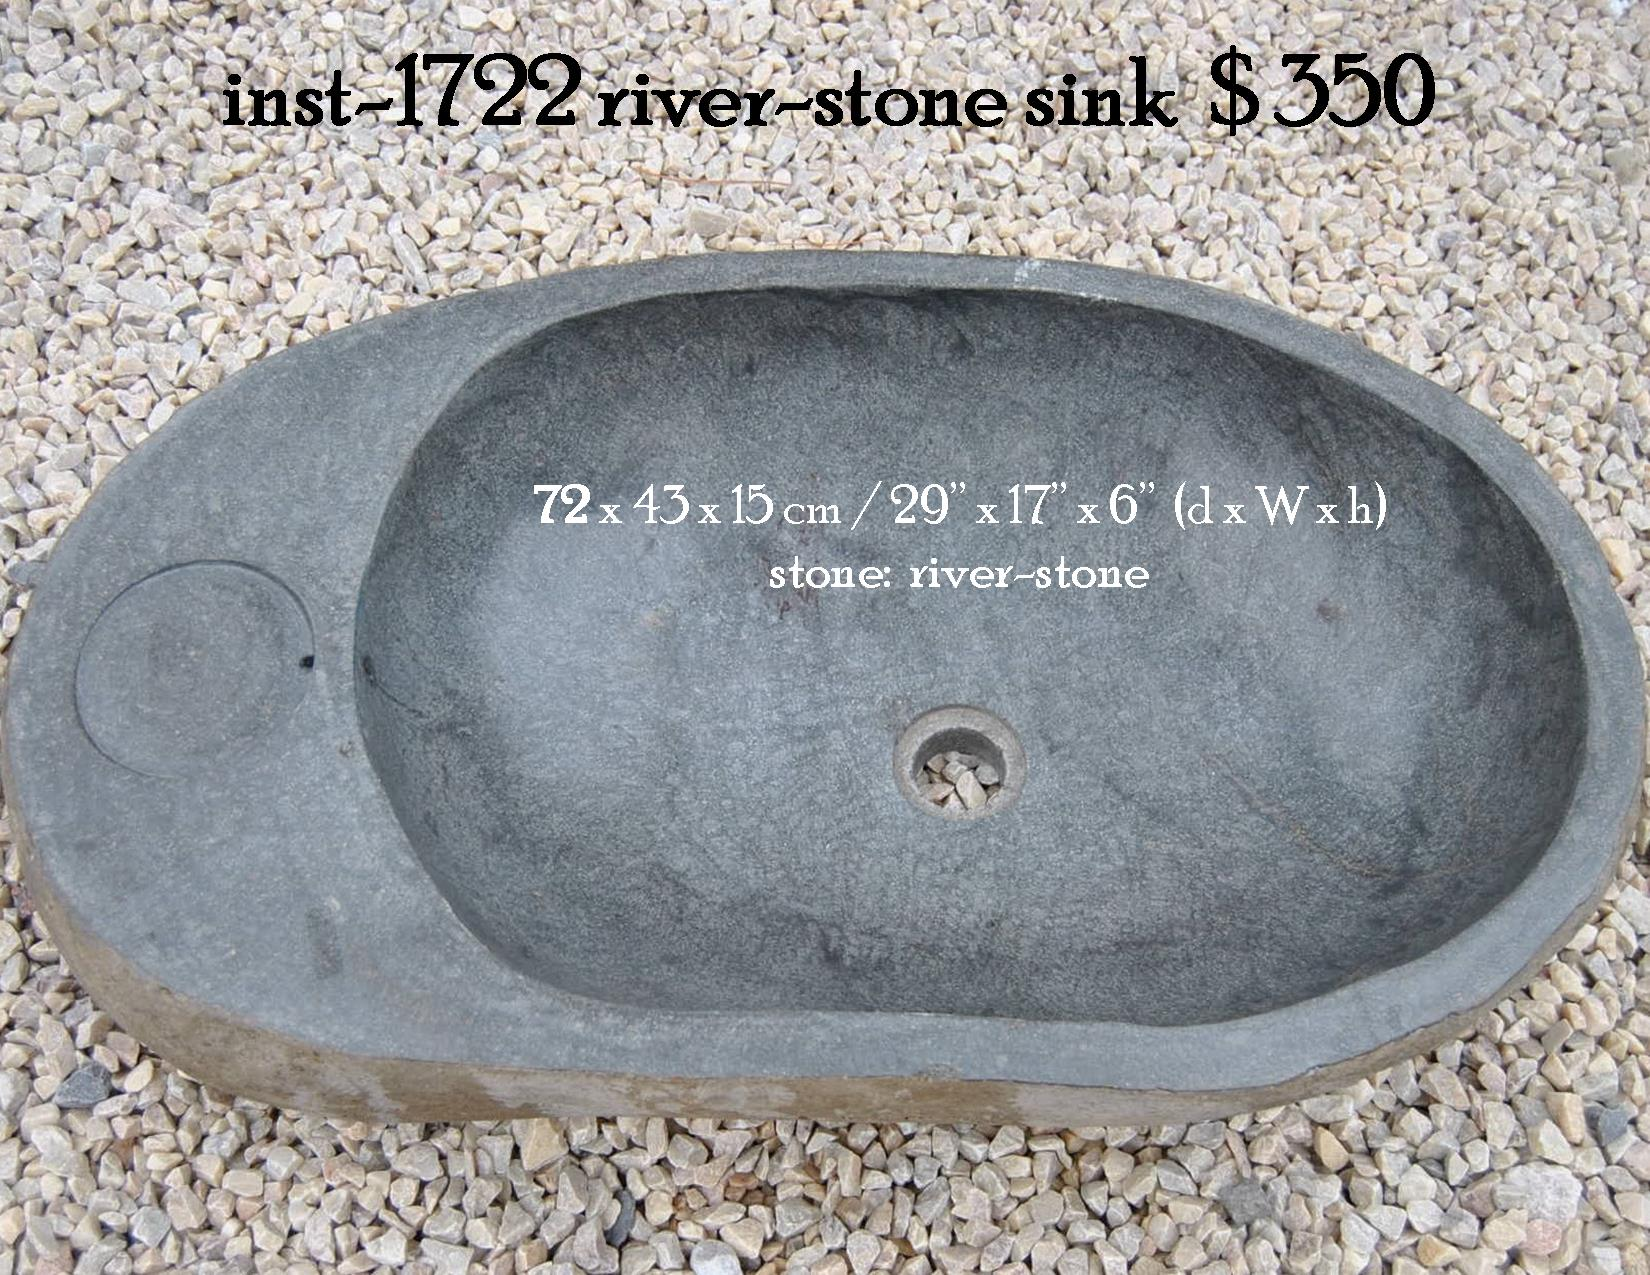 inst-1722 river-stone sink